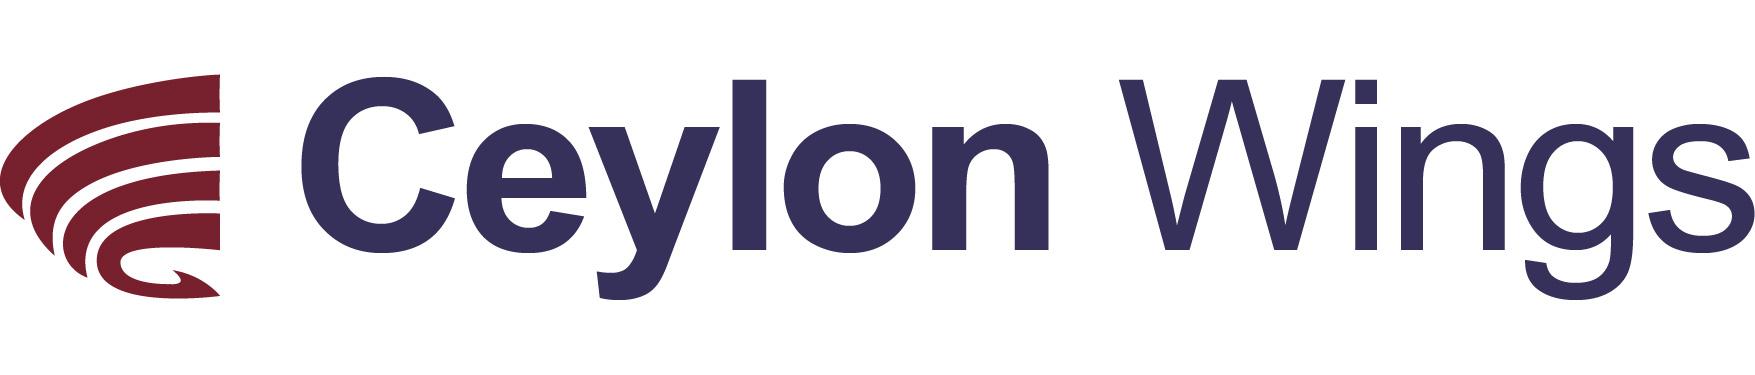 Ceylon Wings Holdings (Private) Limited